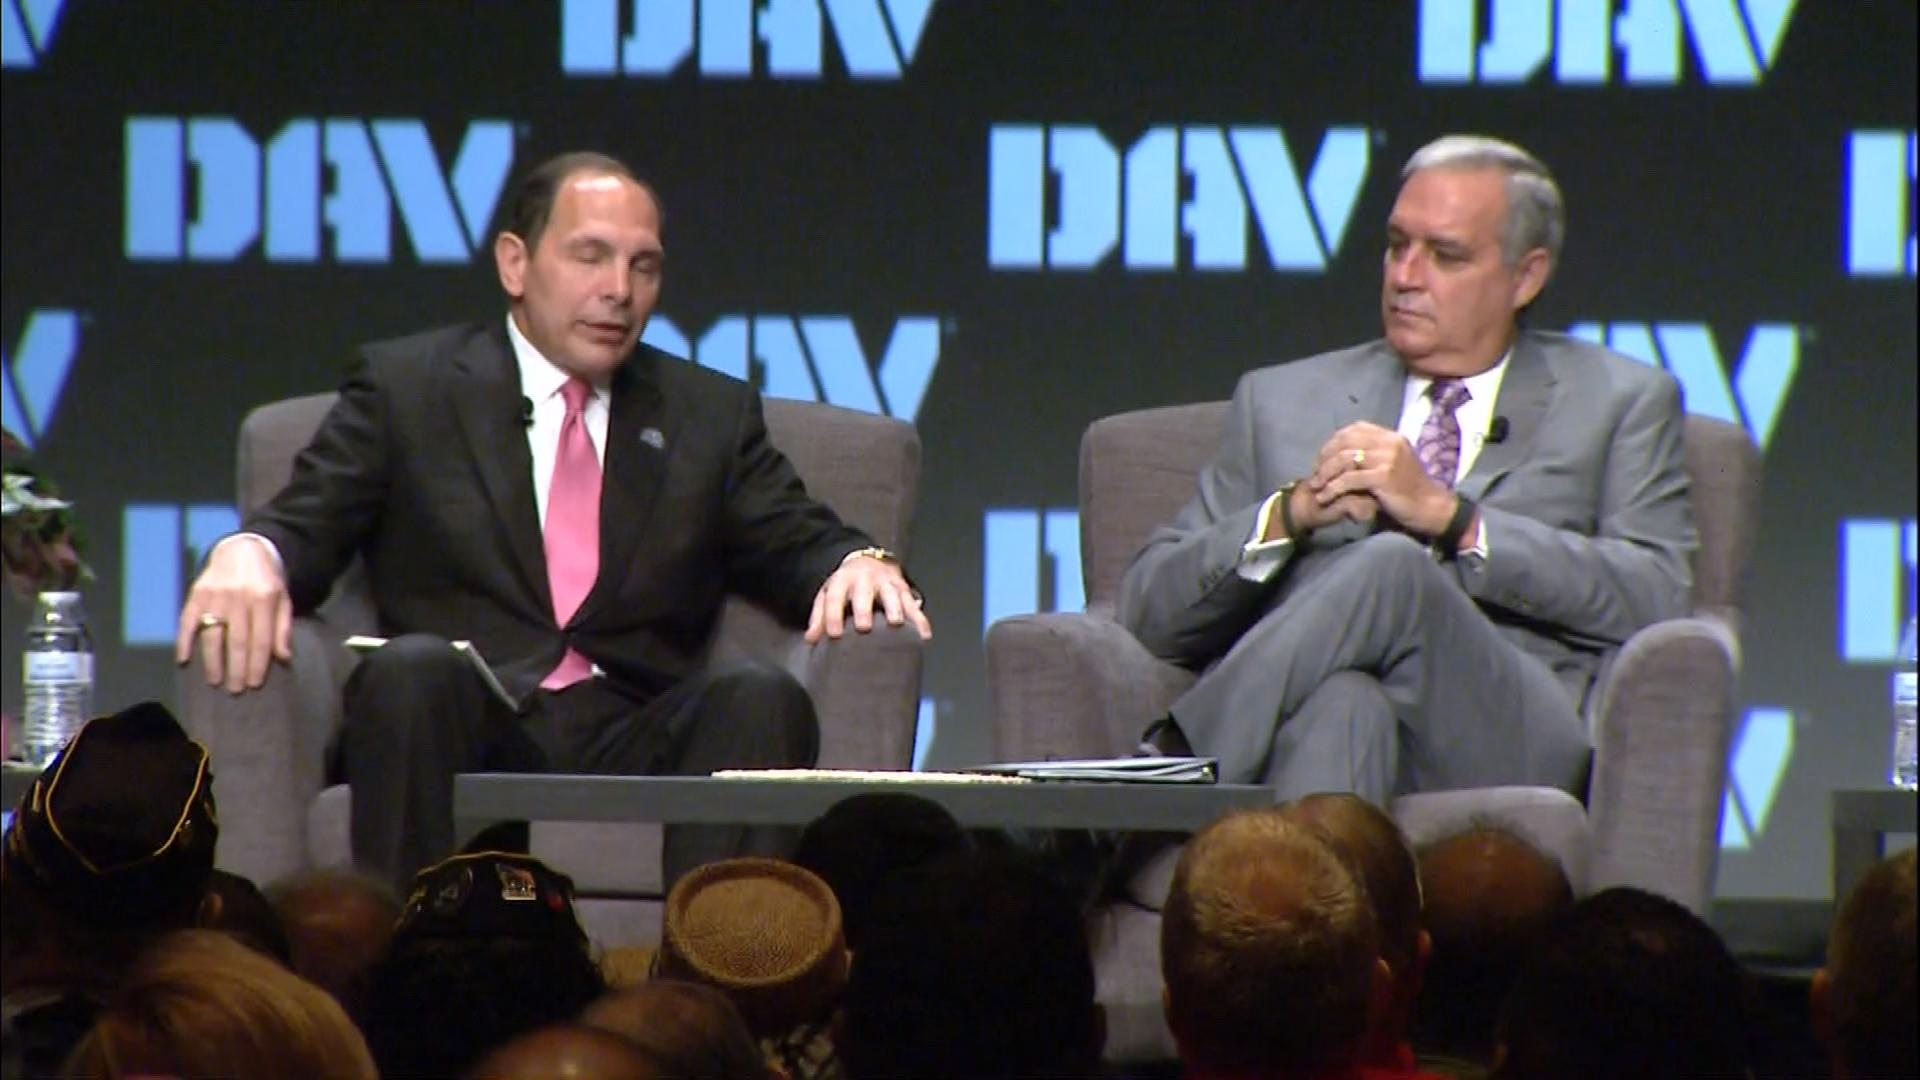 VA Secretary Robert McDonald  and Rep. Jeff Miller, chairman of the House Veterans Affairs Committee in Denver on Monday (credit: CBS)